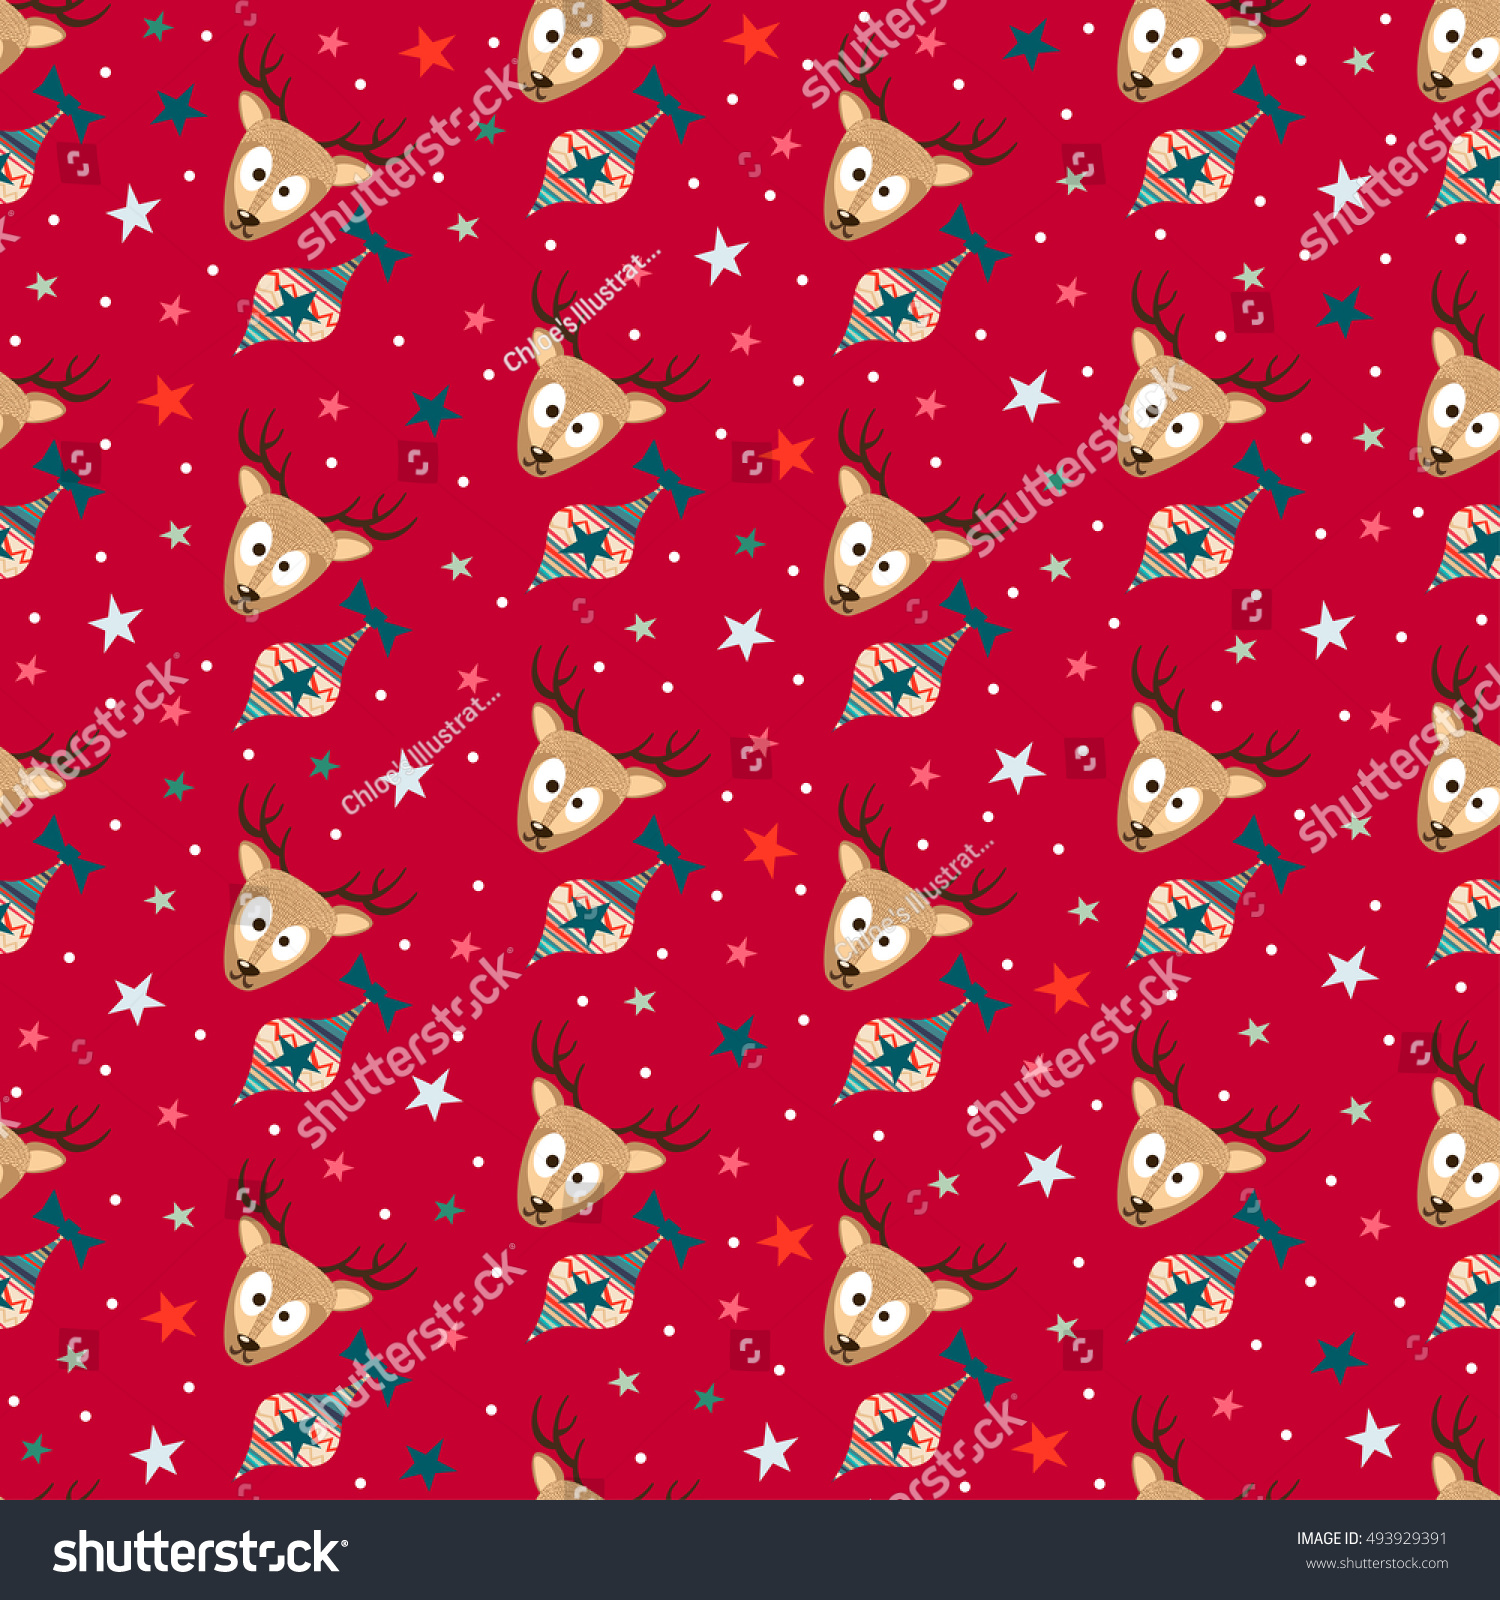 Red Merry Christmas Seamless Pattern Background with Cute Deers, Christmas Tree Toys and Stars. New Years Xmas Gift Wrapping Paper. Raster Cute Christmas Seamless Pattern